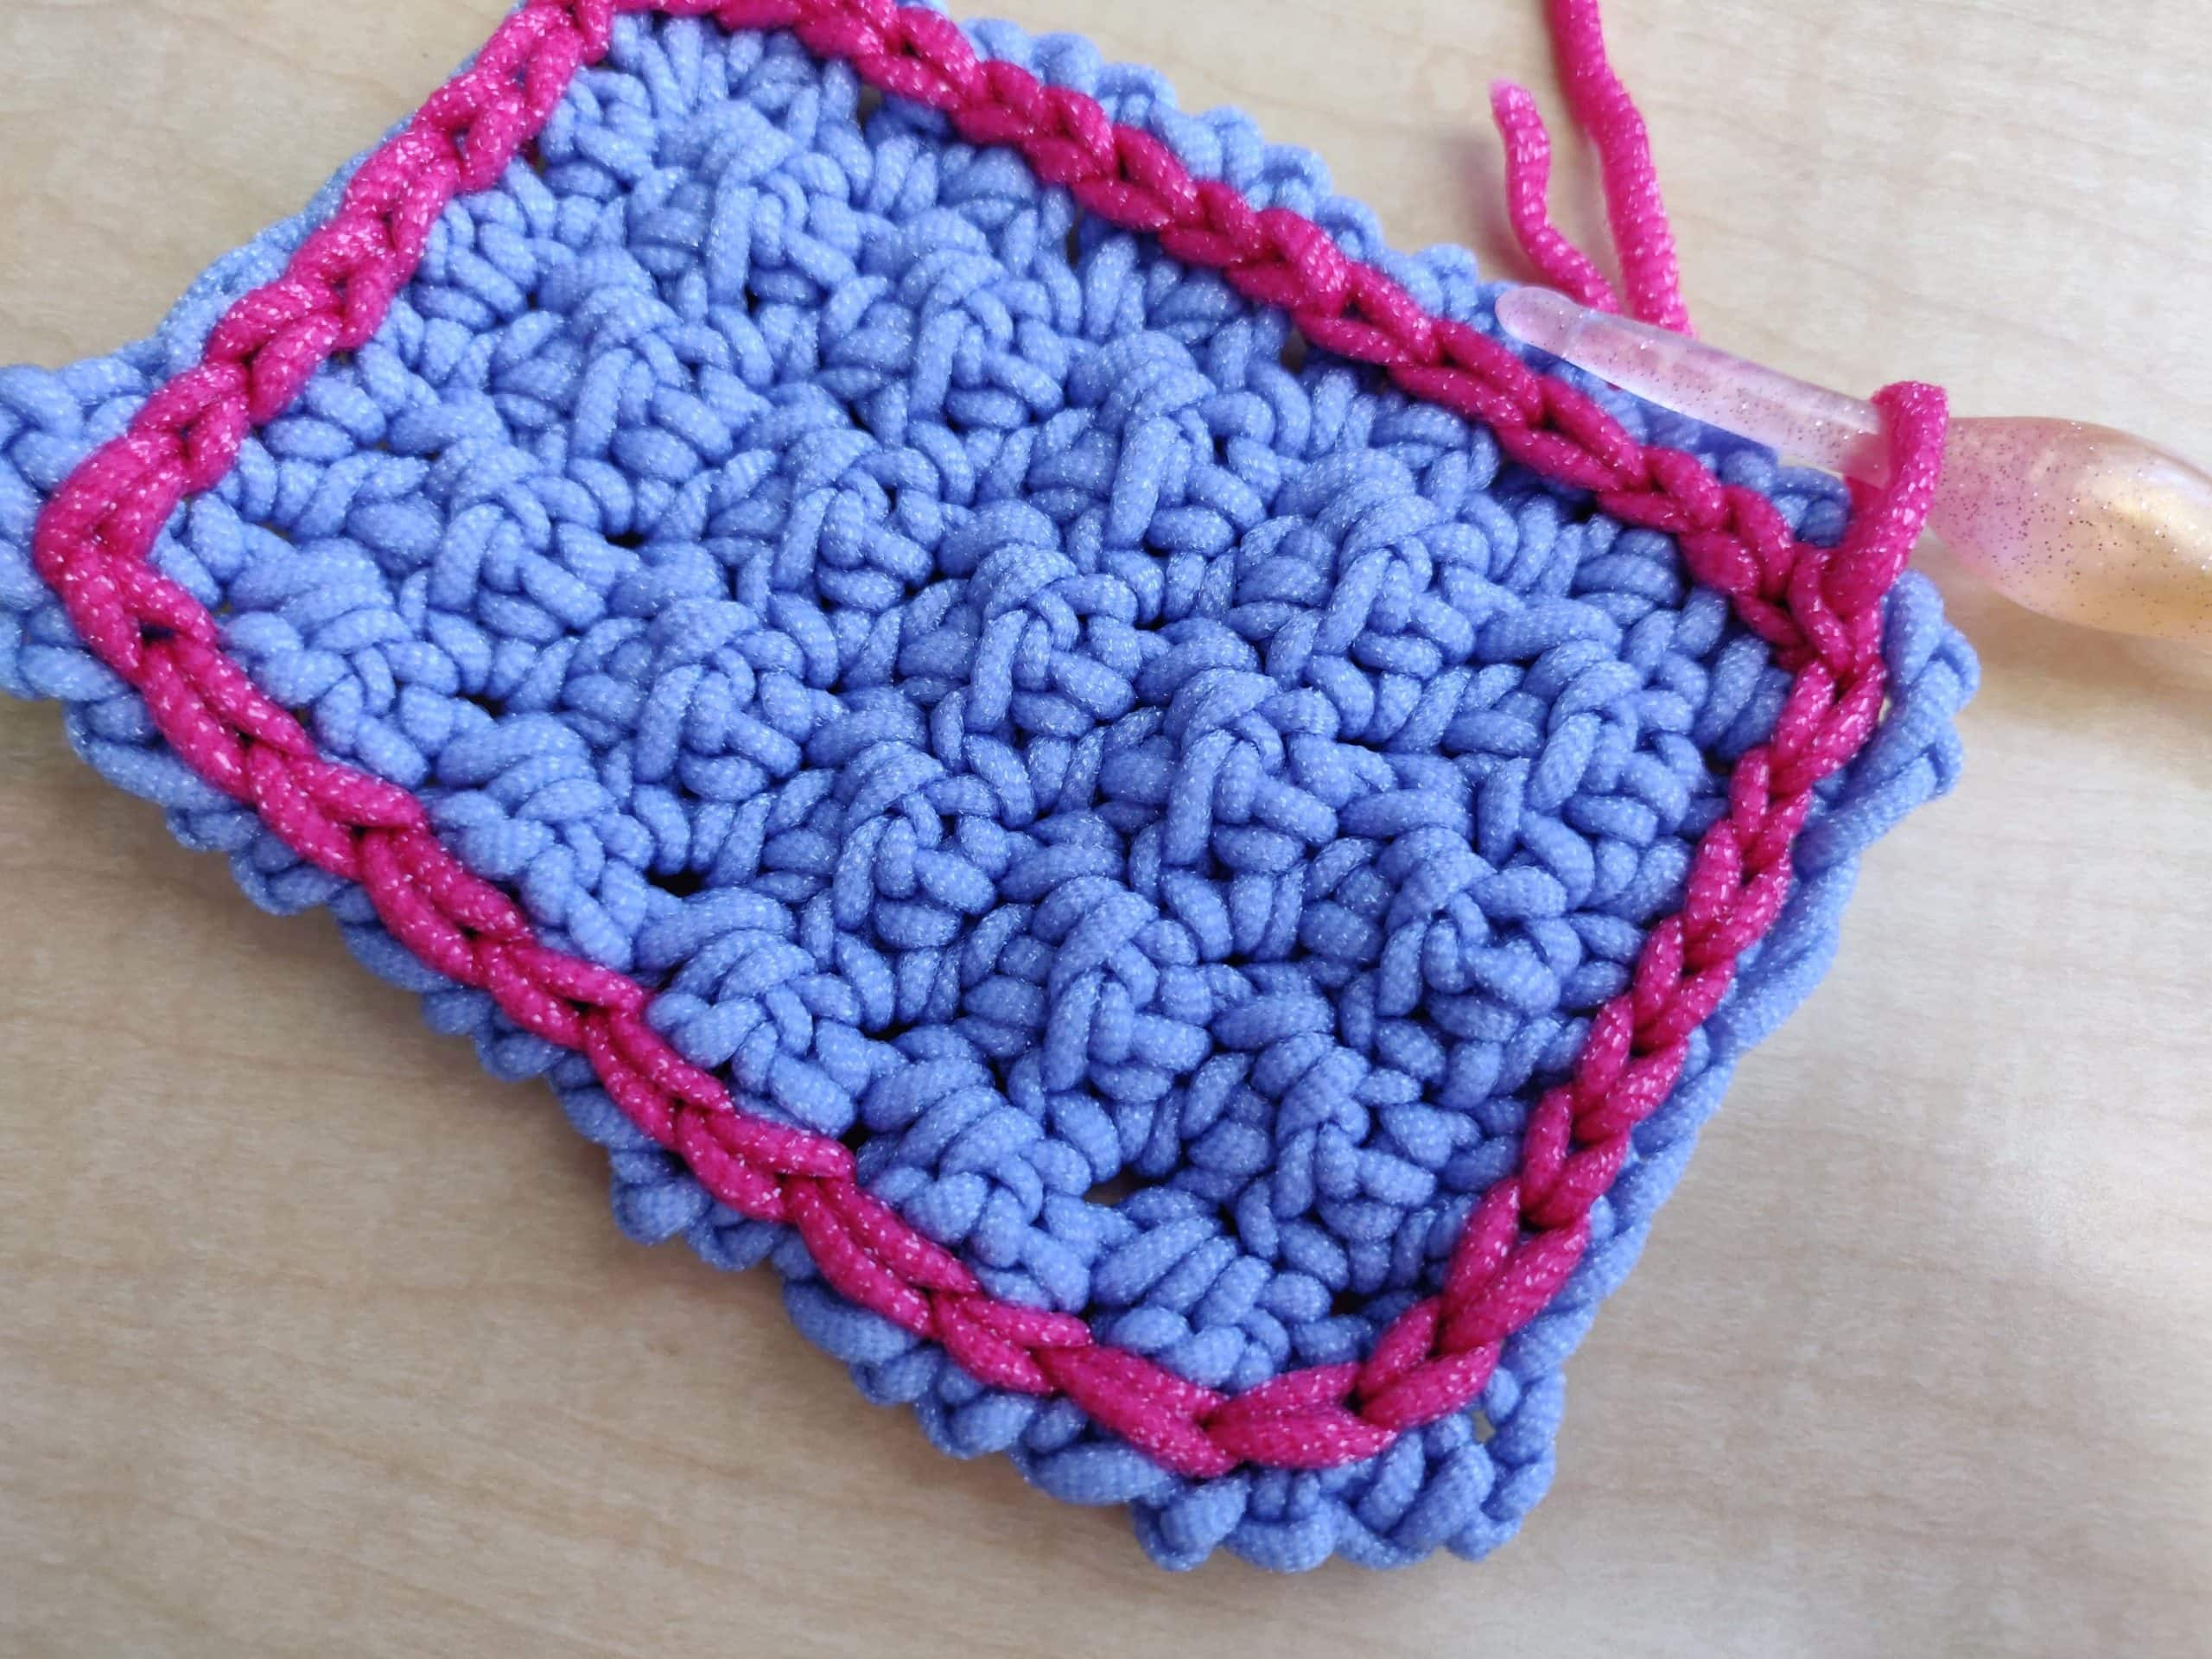 Fastening off a square purple crochet dish scybby with pink yarn and a colorful crochet hook